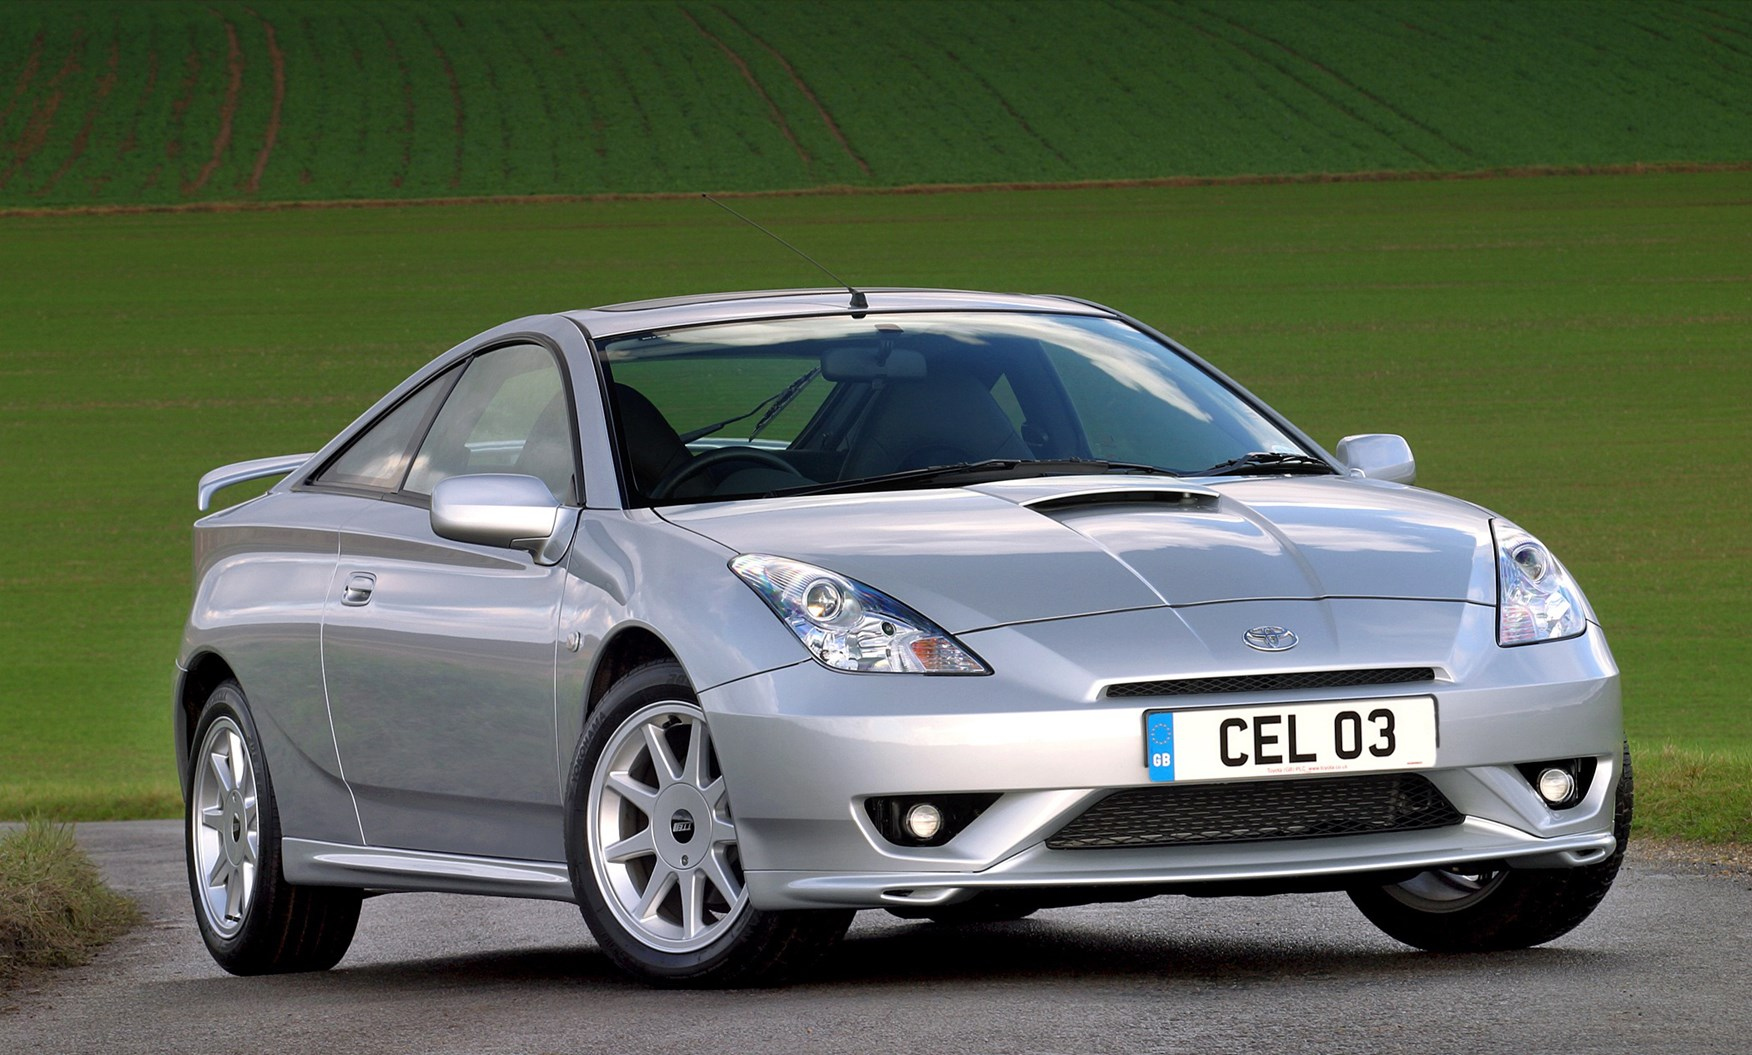 Used Toyota Prius For Sale >> Toyota Celica Coupé (1999 - 2006) Running Costs | Parkers